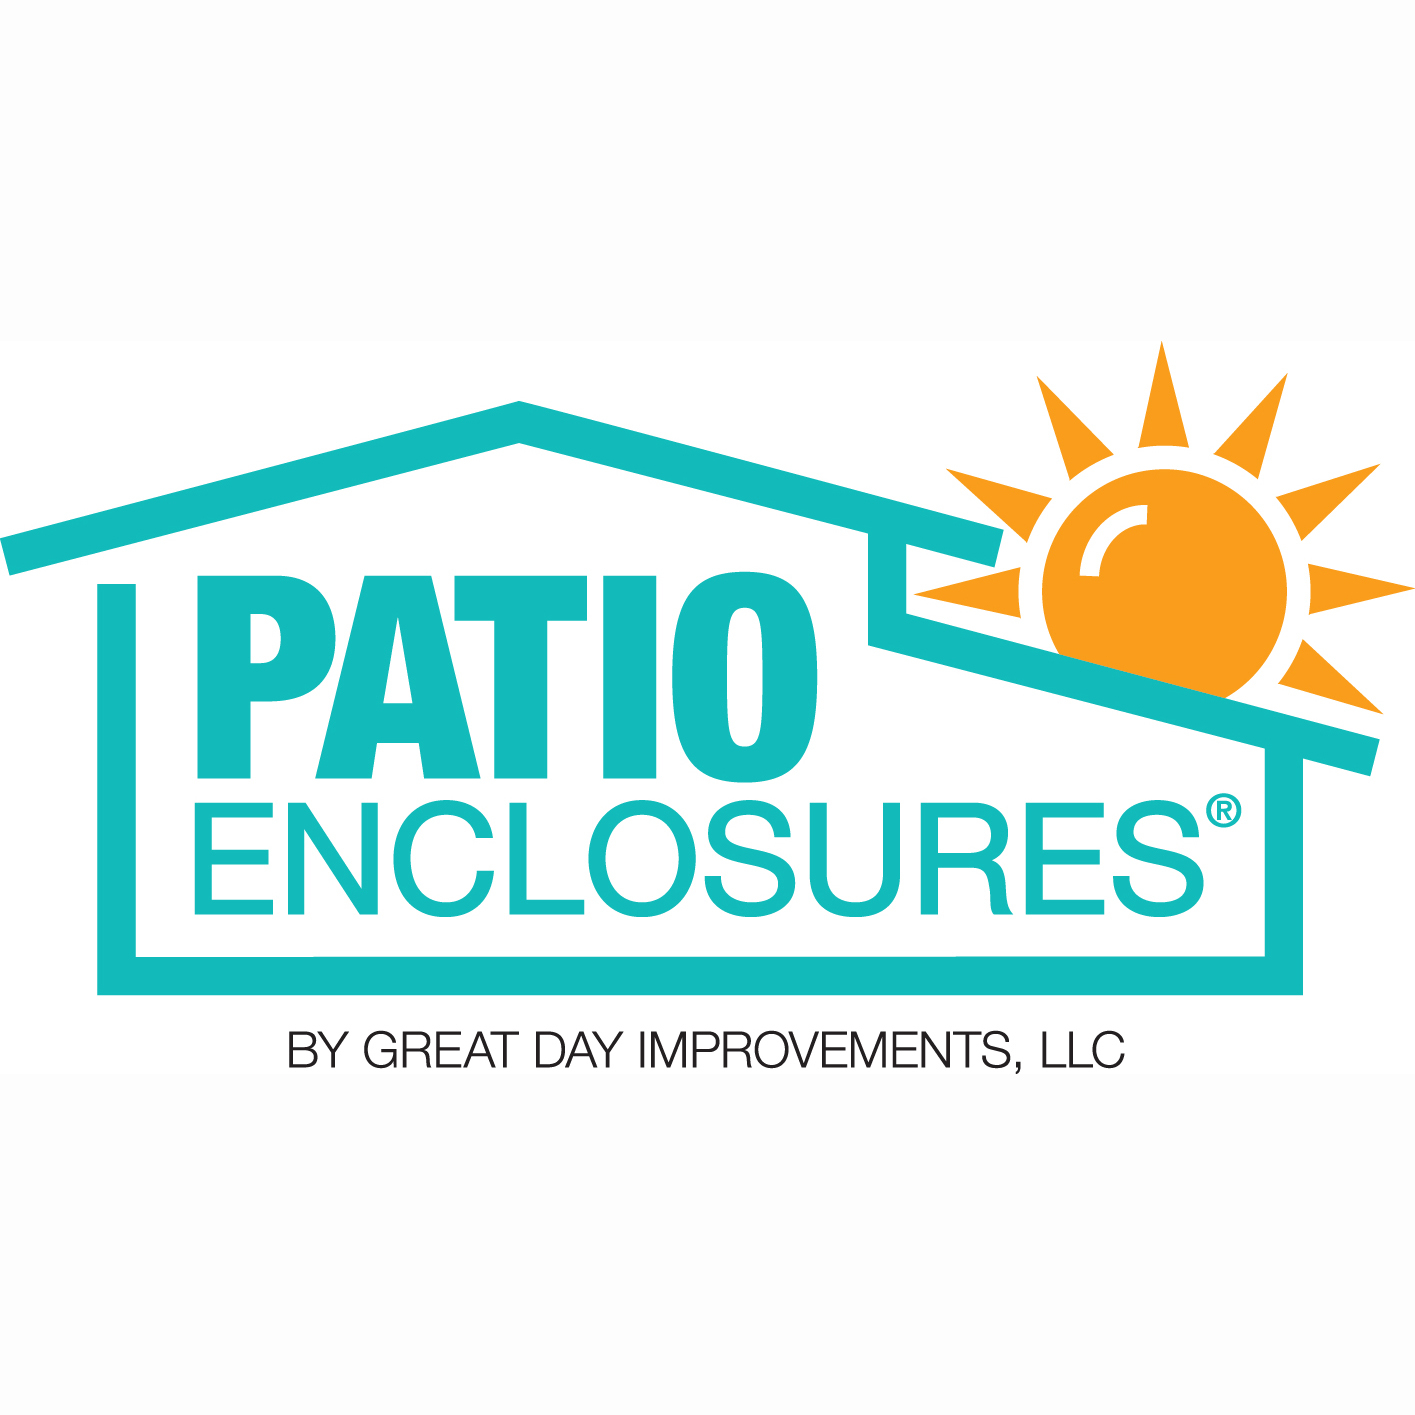 Patio Enclosures image 22